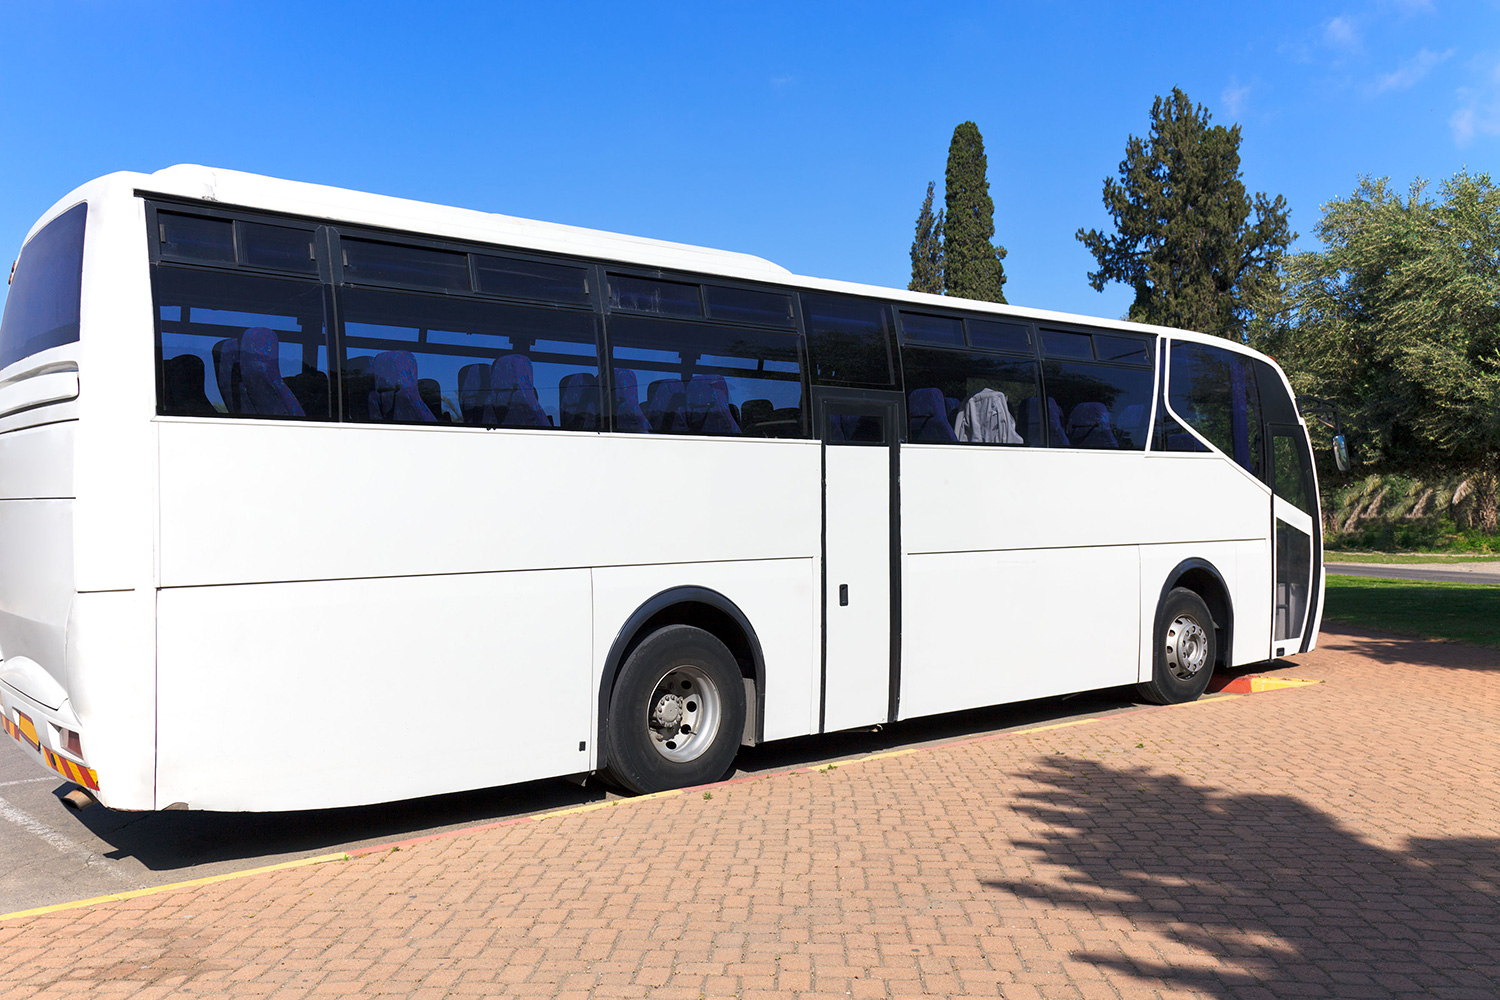 TRANSPORTATION MANAGEMENT   We offer guest and VIP transportation providing the most elegant, economical and reliable solutions for meeting all travel needs. We also provide bi-lingual meet and greet guides for arrival transfers as well as city tours.